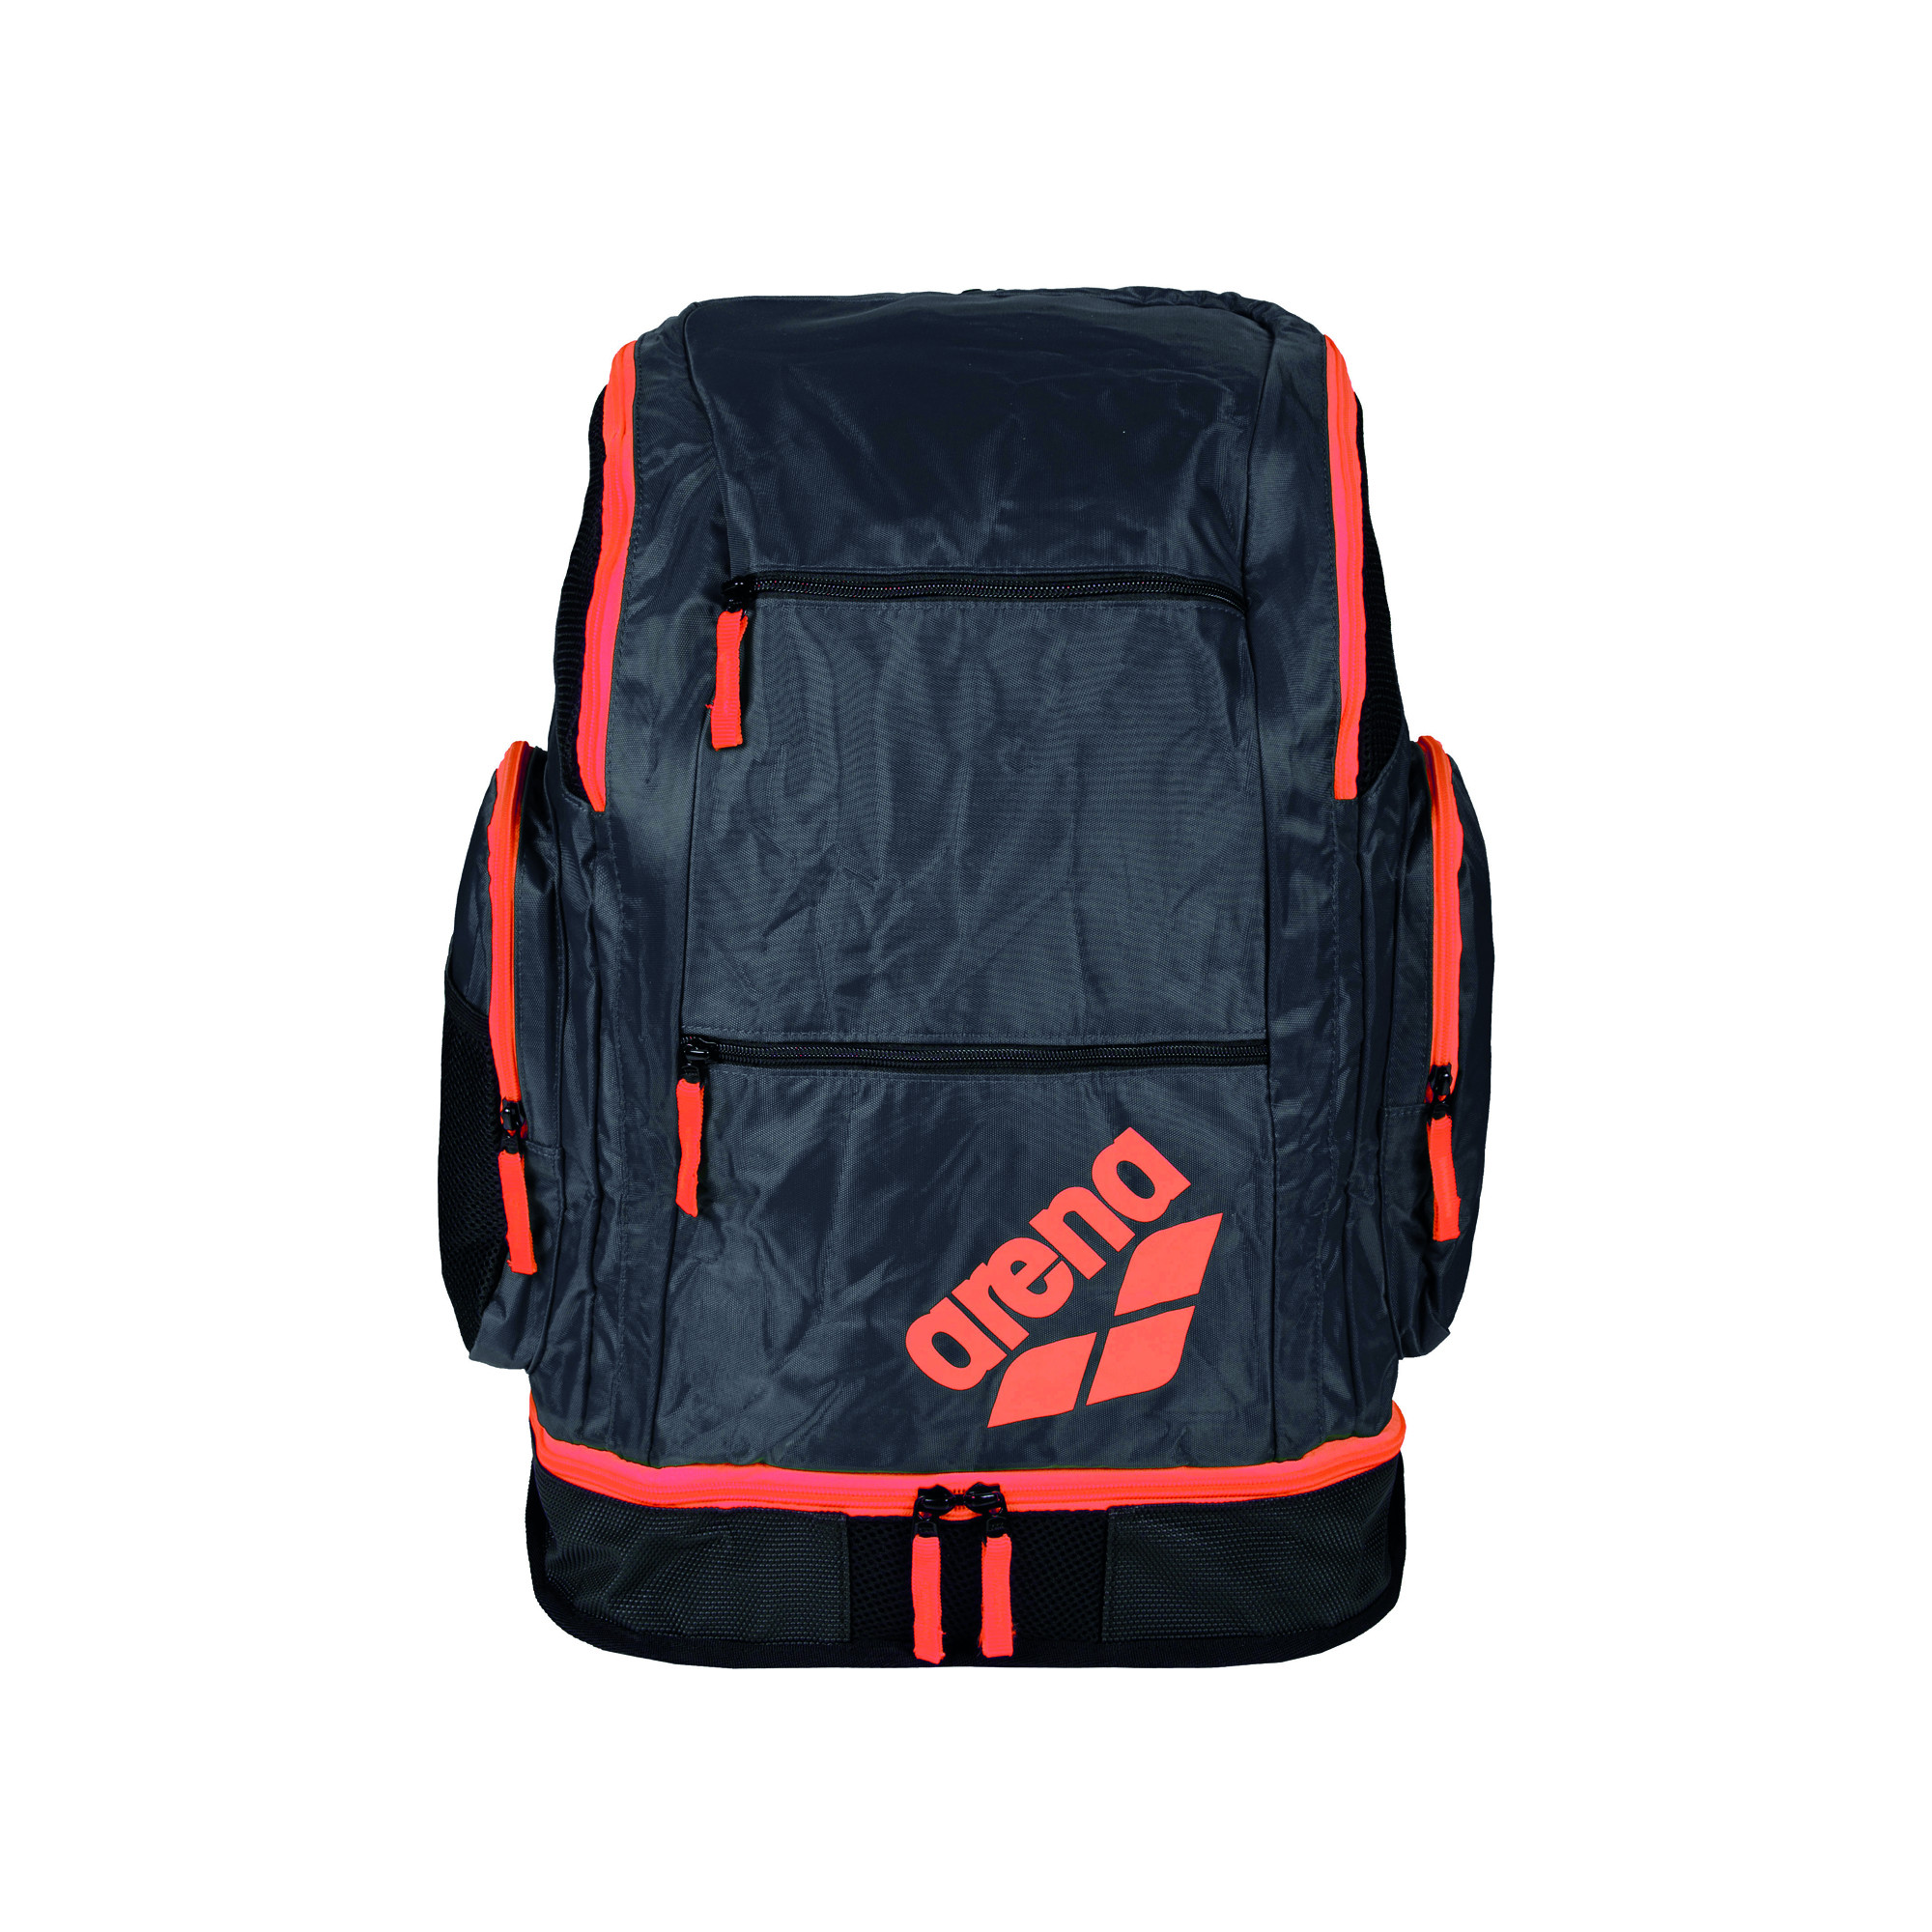 3f67b880e96c Arena Spiky 2 Backpack - Ly Sports